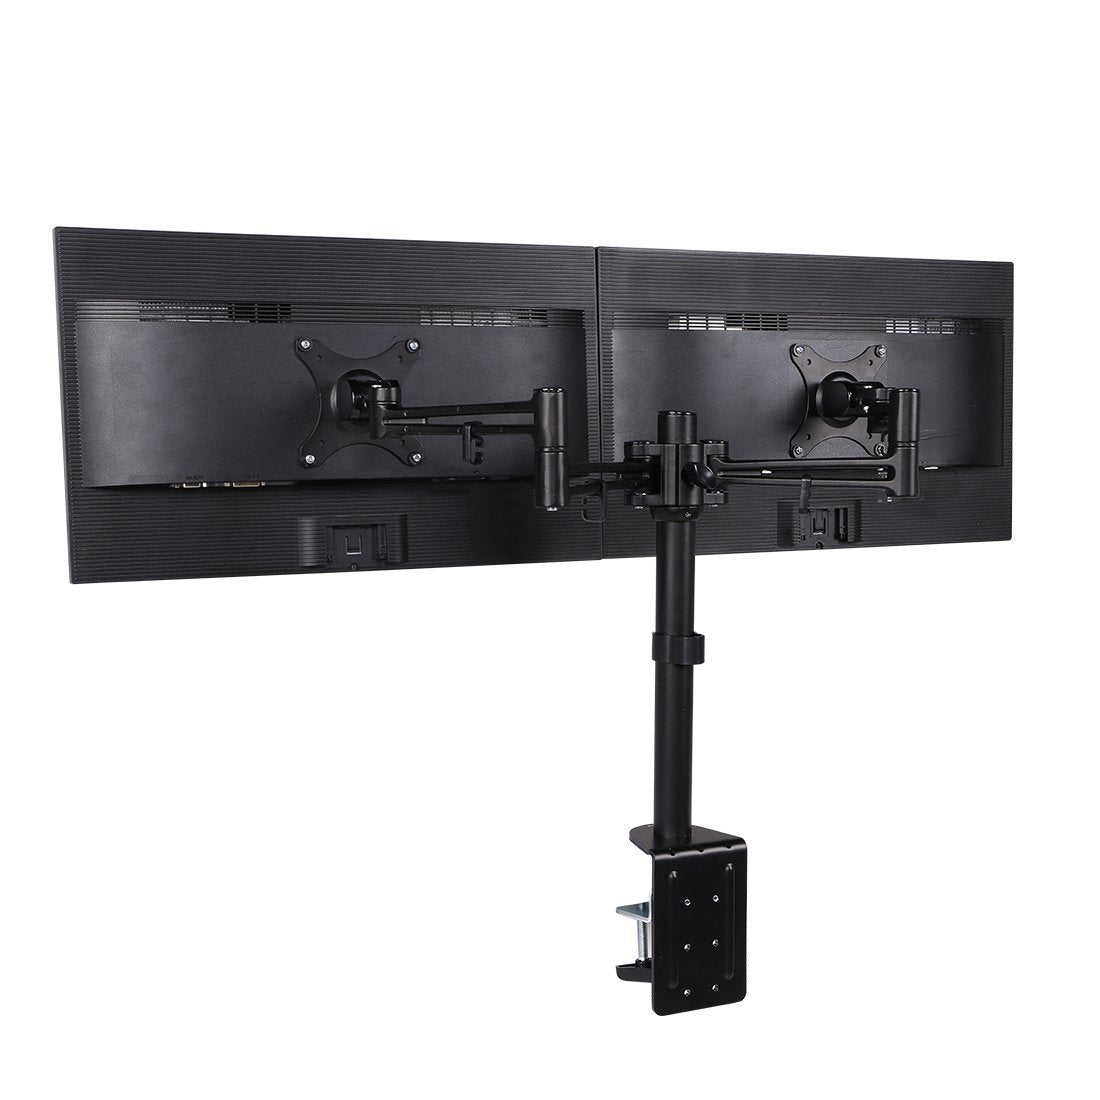 Thingyclub Full Motion Computer Monitor Arm Desktop Mount